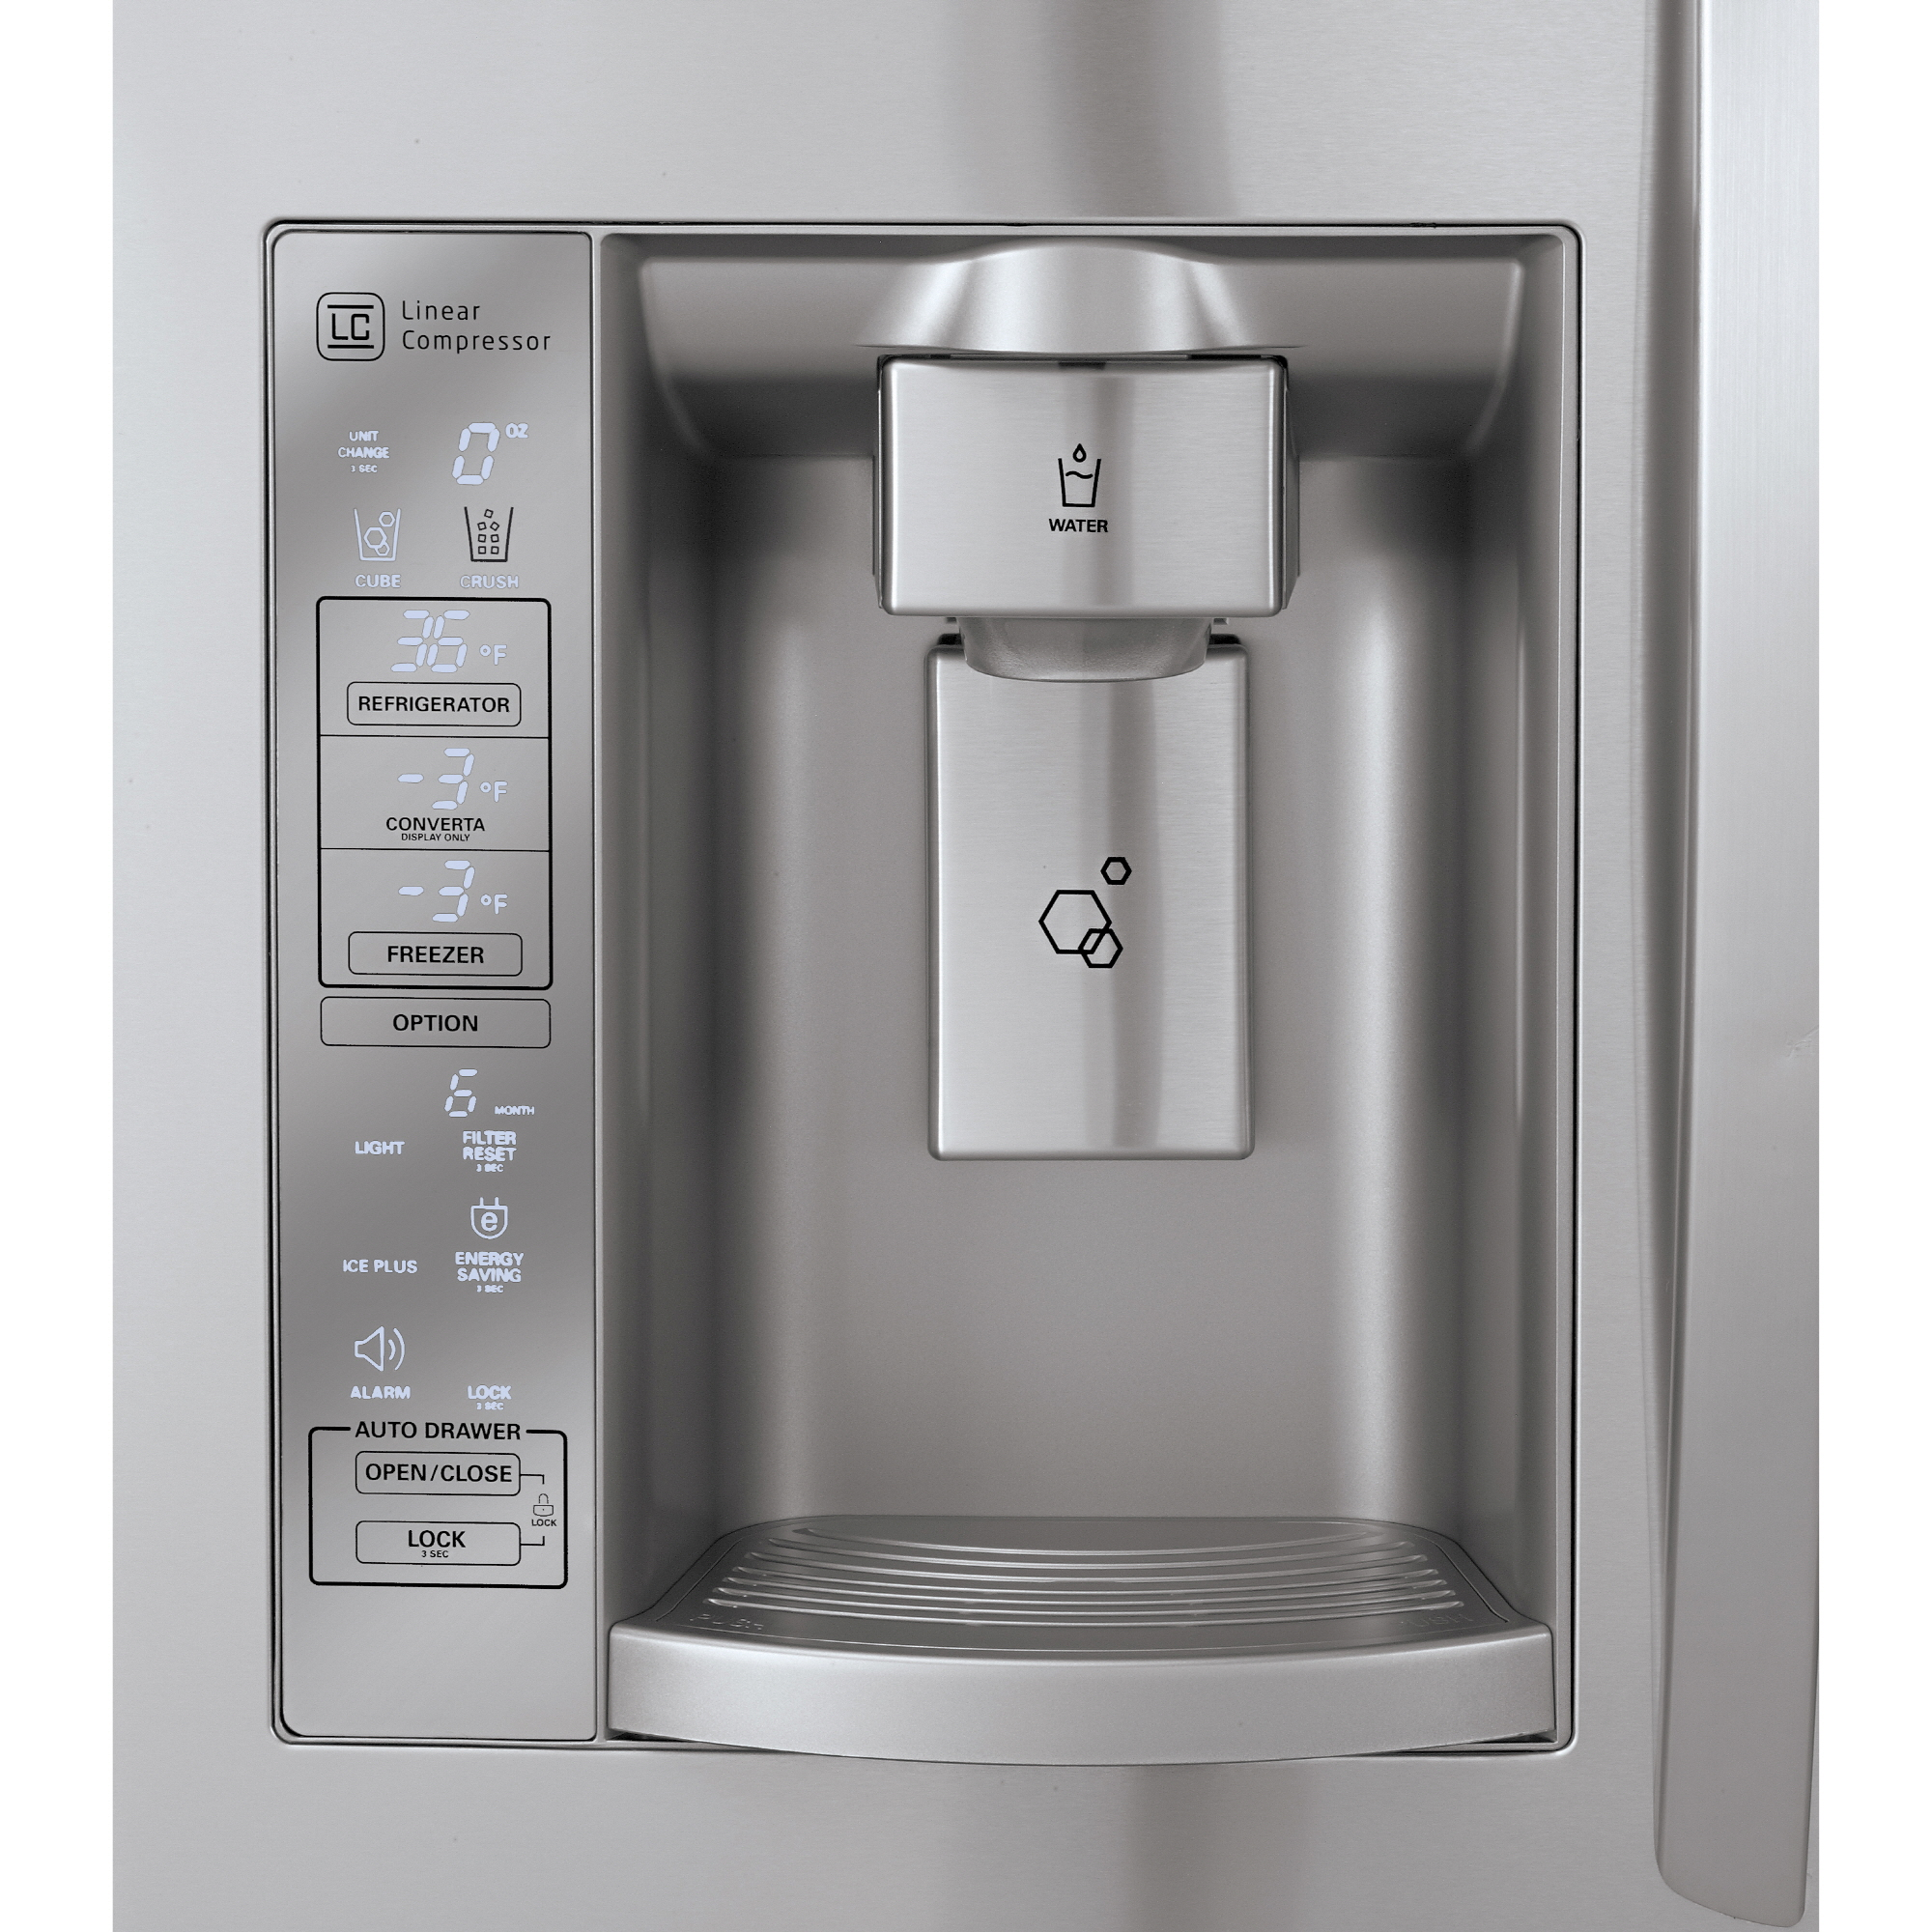 Close-up view of the new LG Four-Door French-Door refrigerator's water dispenser